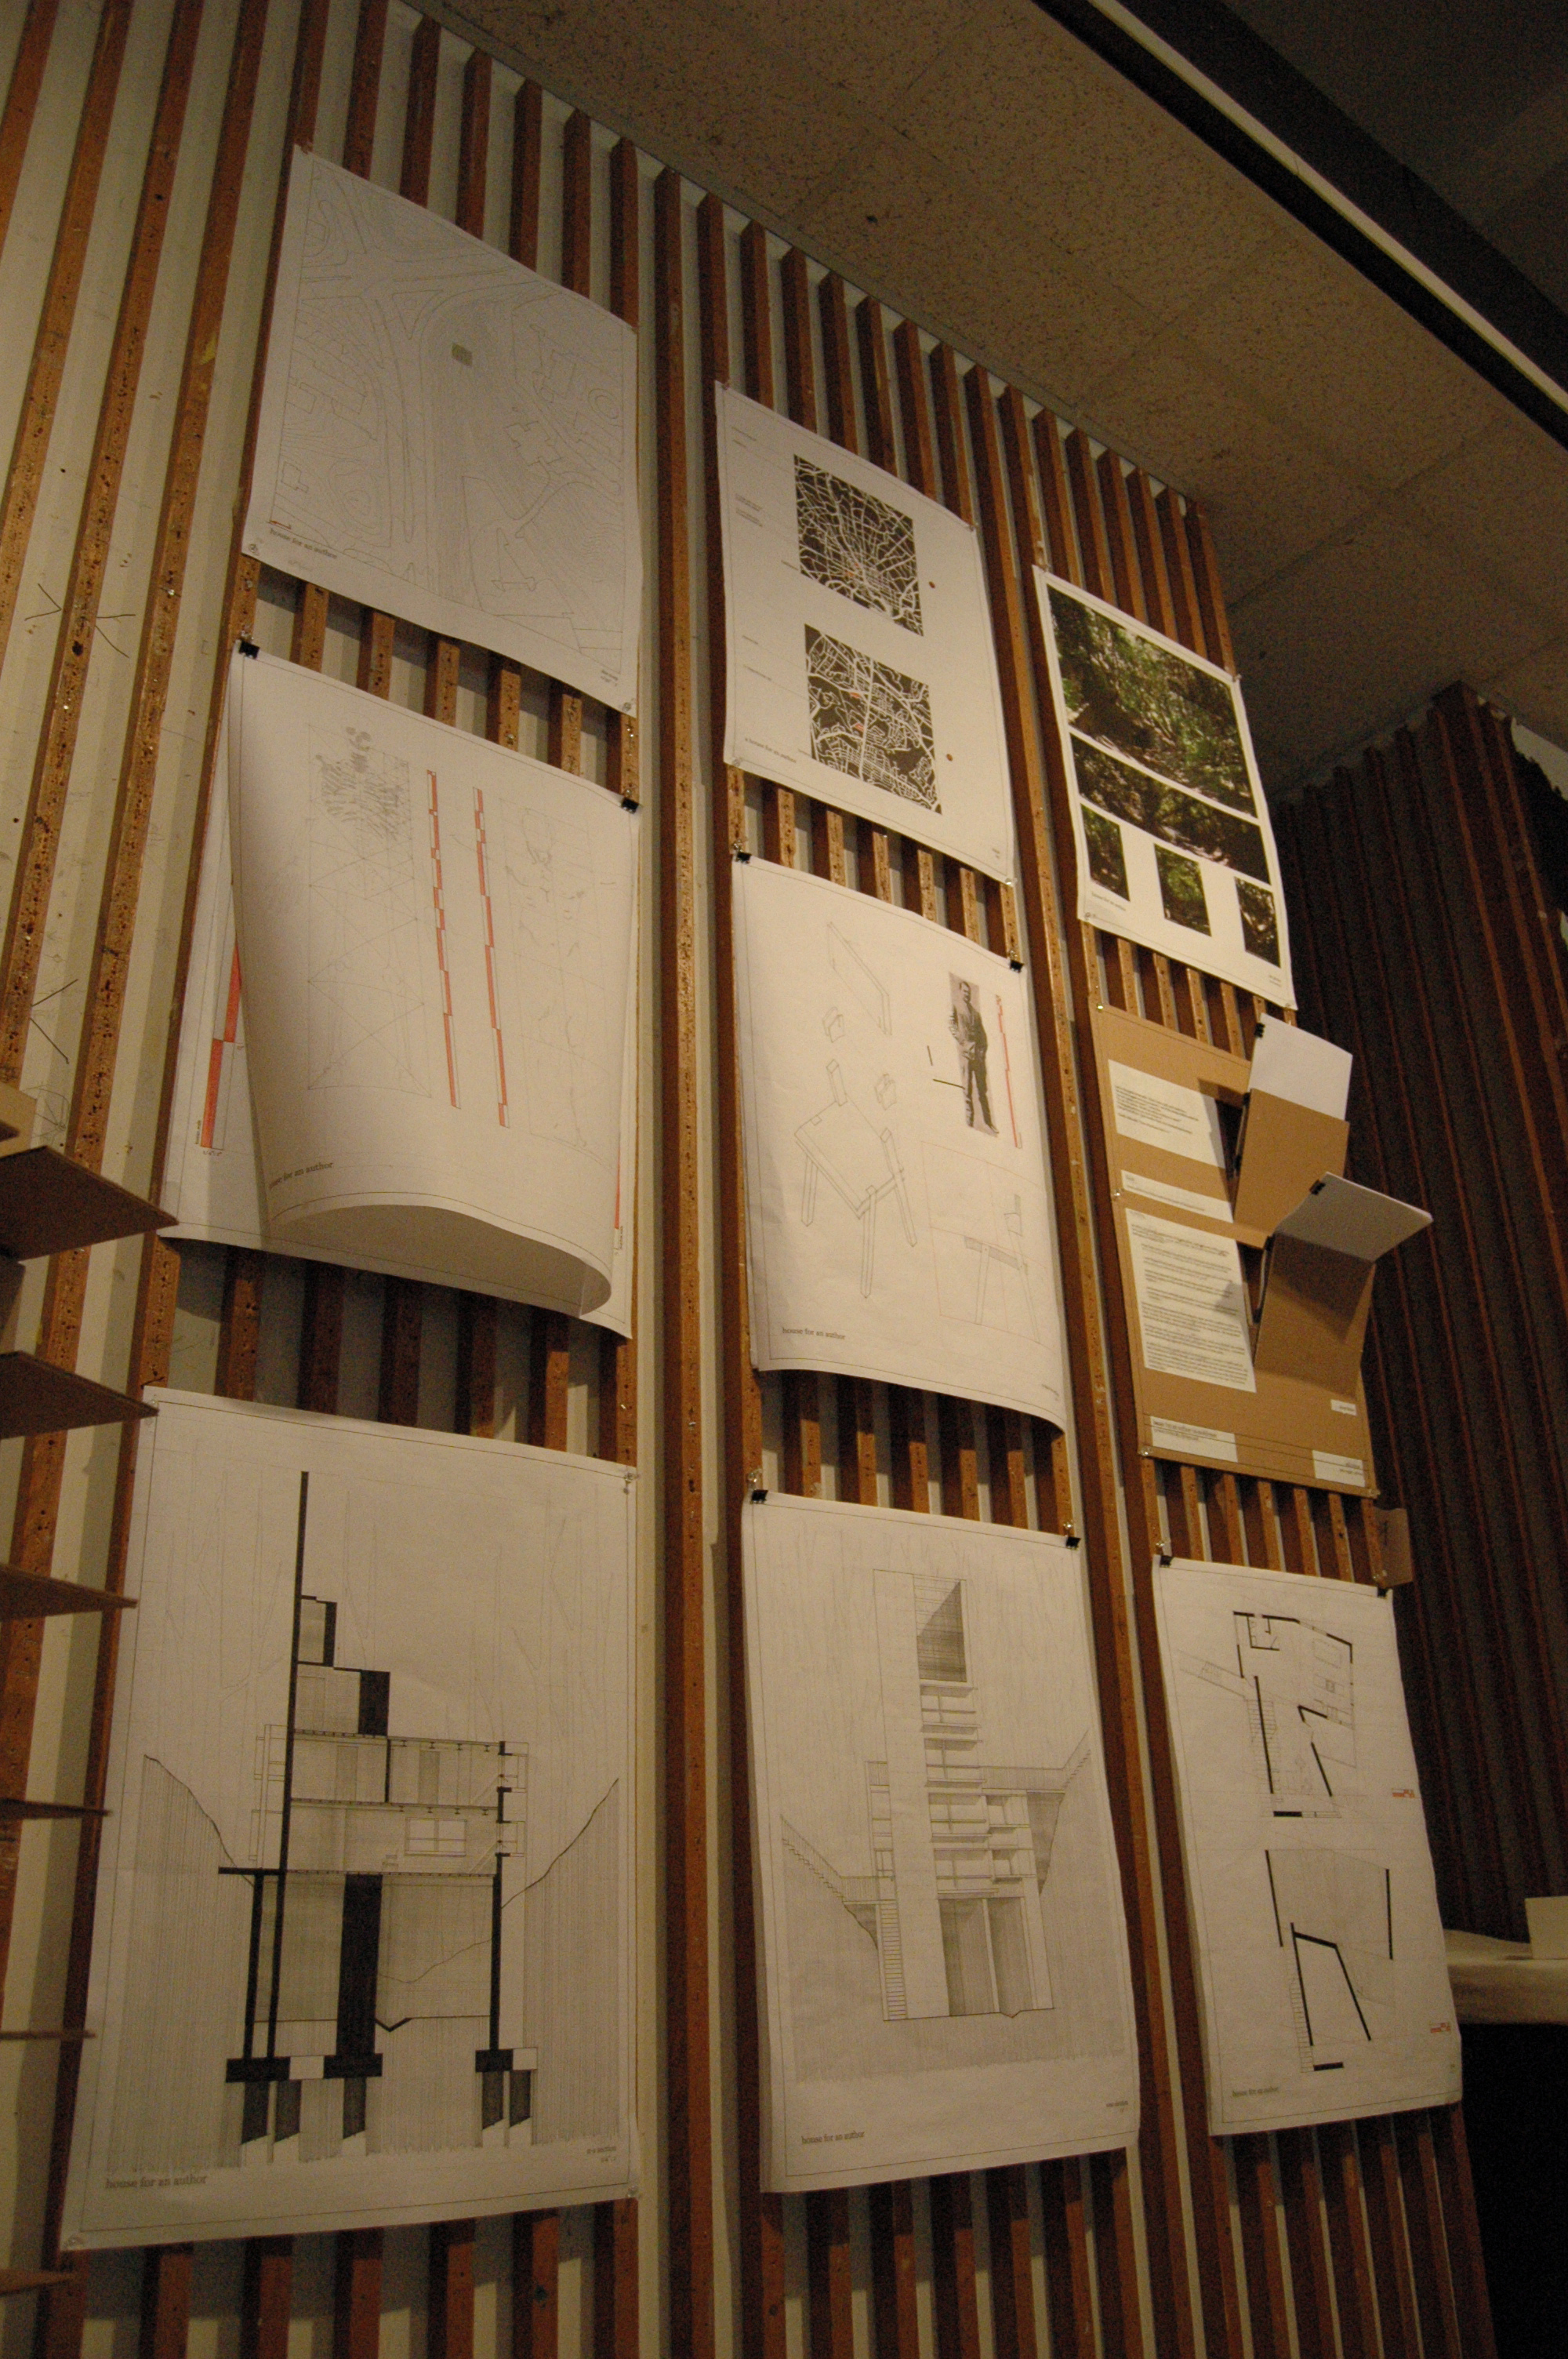 My thesis in architecture school was a house for an author. Some of my writing (and my rejection letters) were part of my pin-ups, visible here in the middle row, all the way to right.